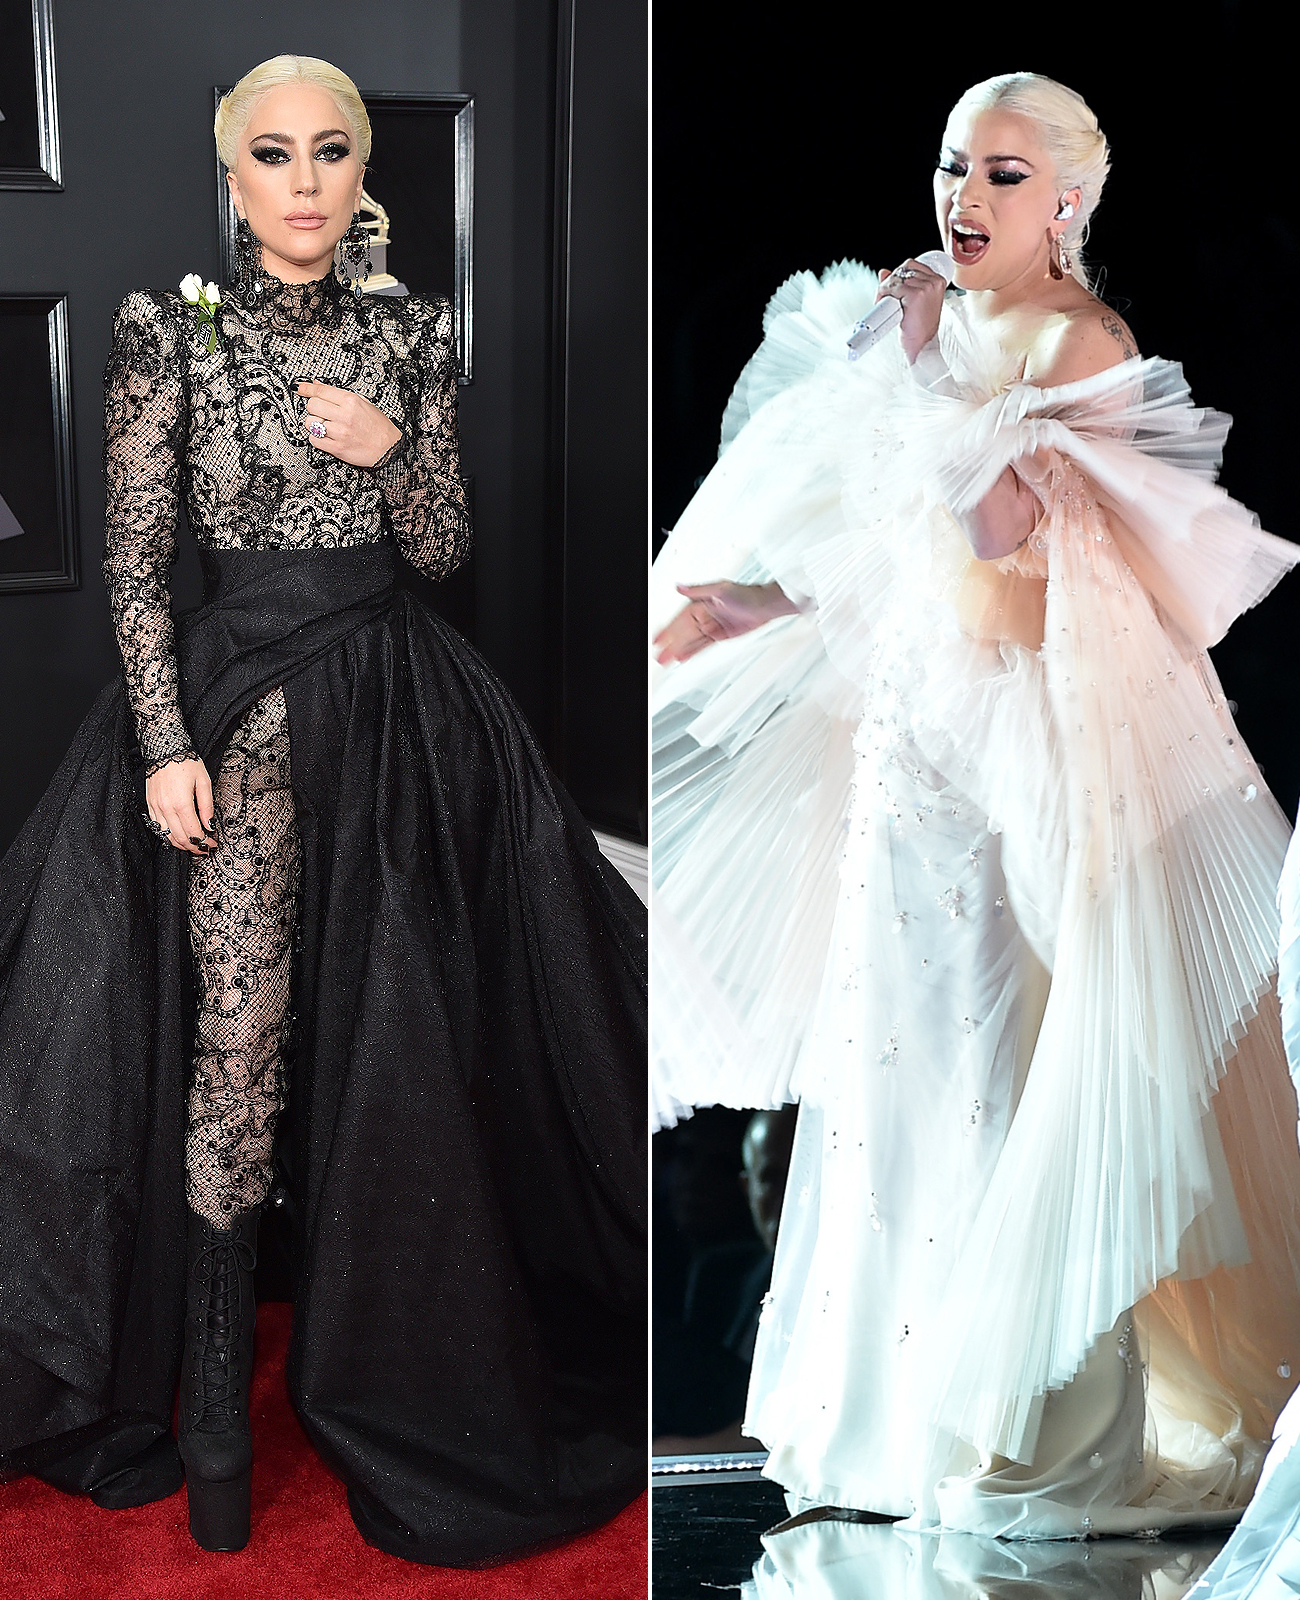 outfit-changes-lady-gaga